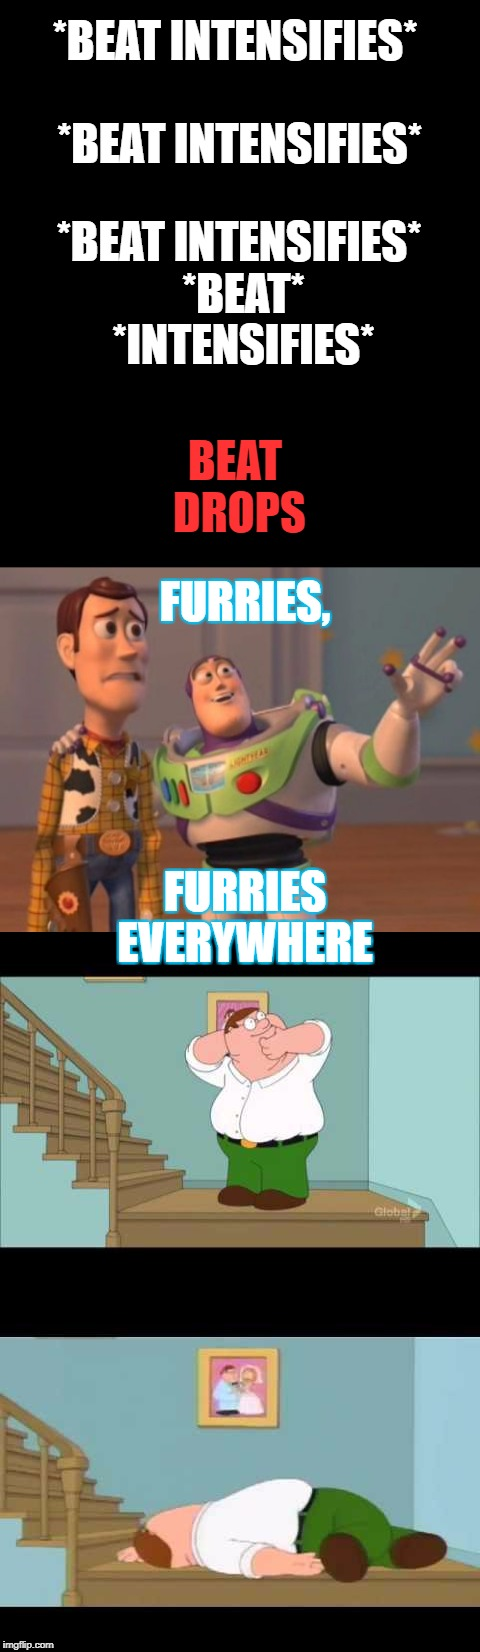 How people view the furry fandom | FURRIES, FURRIES EVERYWHERE *BEAT INTENSIFIES*           *BEAT INTENSIFIES* *BEAT INTENSIFIES* *BEAT* *INTENSIFIES* BEAT DROPS | image tagged in memes,funny,end my suffering,furries,fandom | made w/ Imgflip meme maker